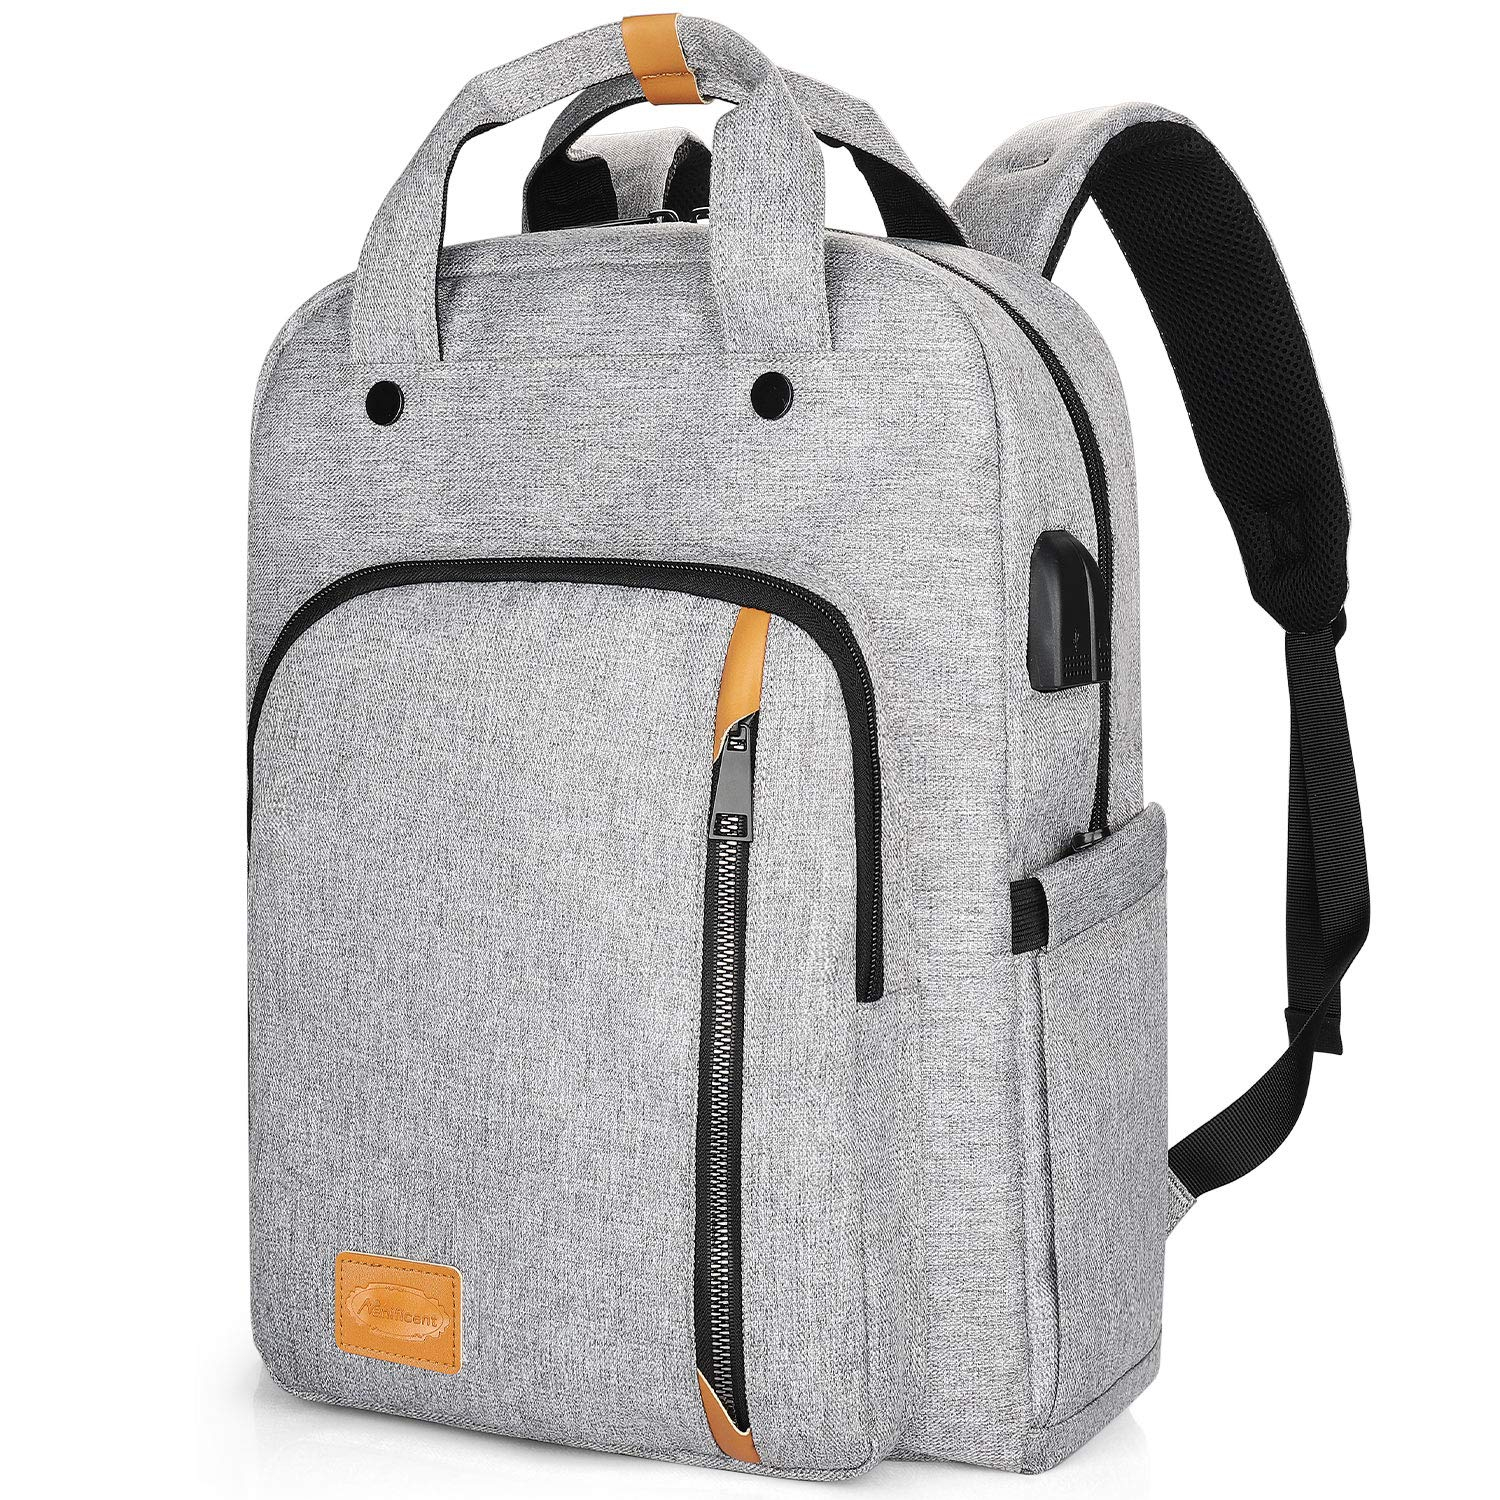 Computer Backpacks for Laptops 15.6 Inch, Padded Travel Laptop Backpack for Women Men, Water Resistant Large Capacity Daypack Bookbag Rucksack for College High School Student Work Business Bag- Grey